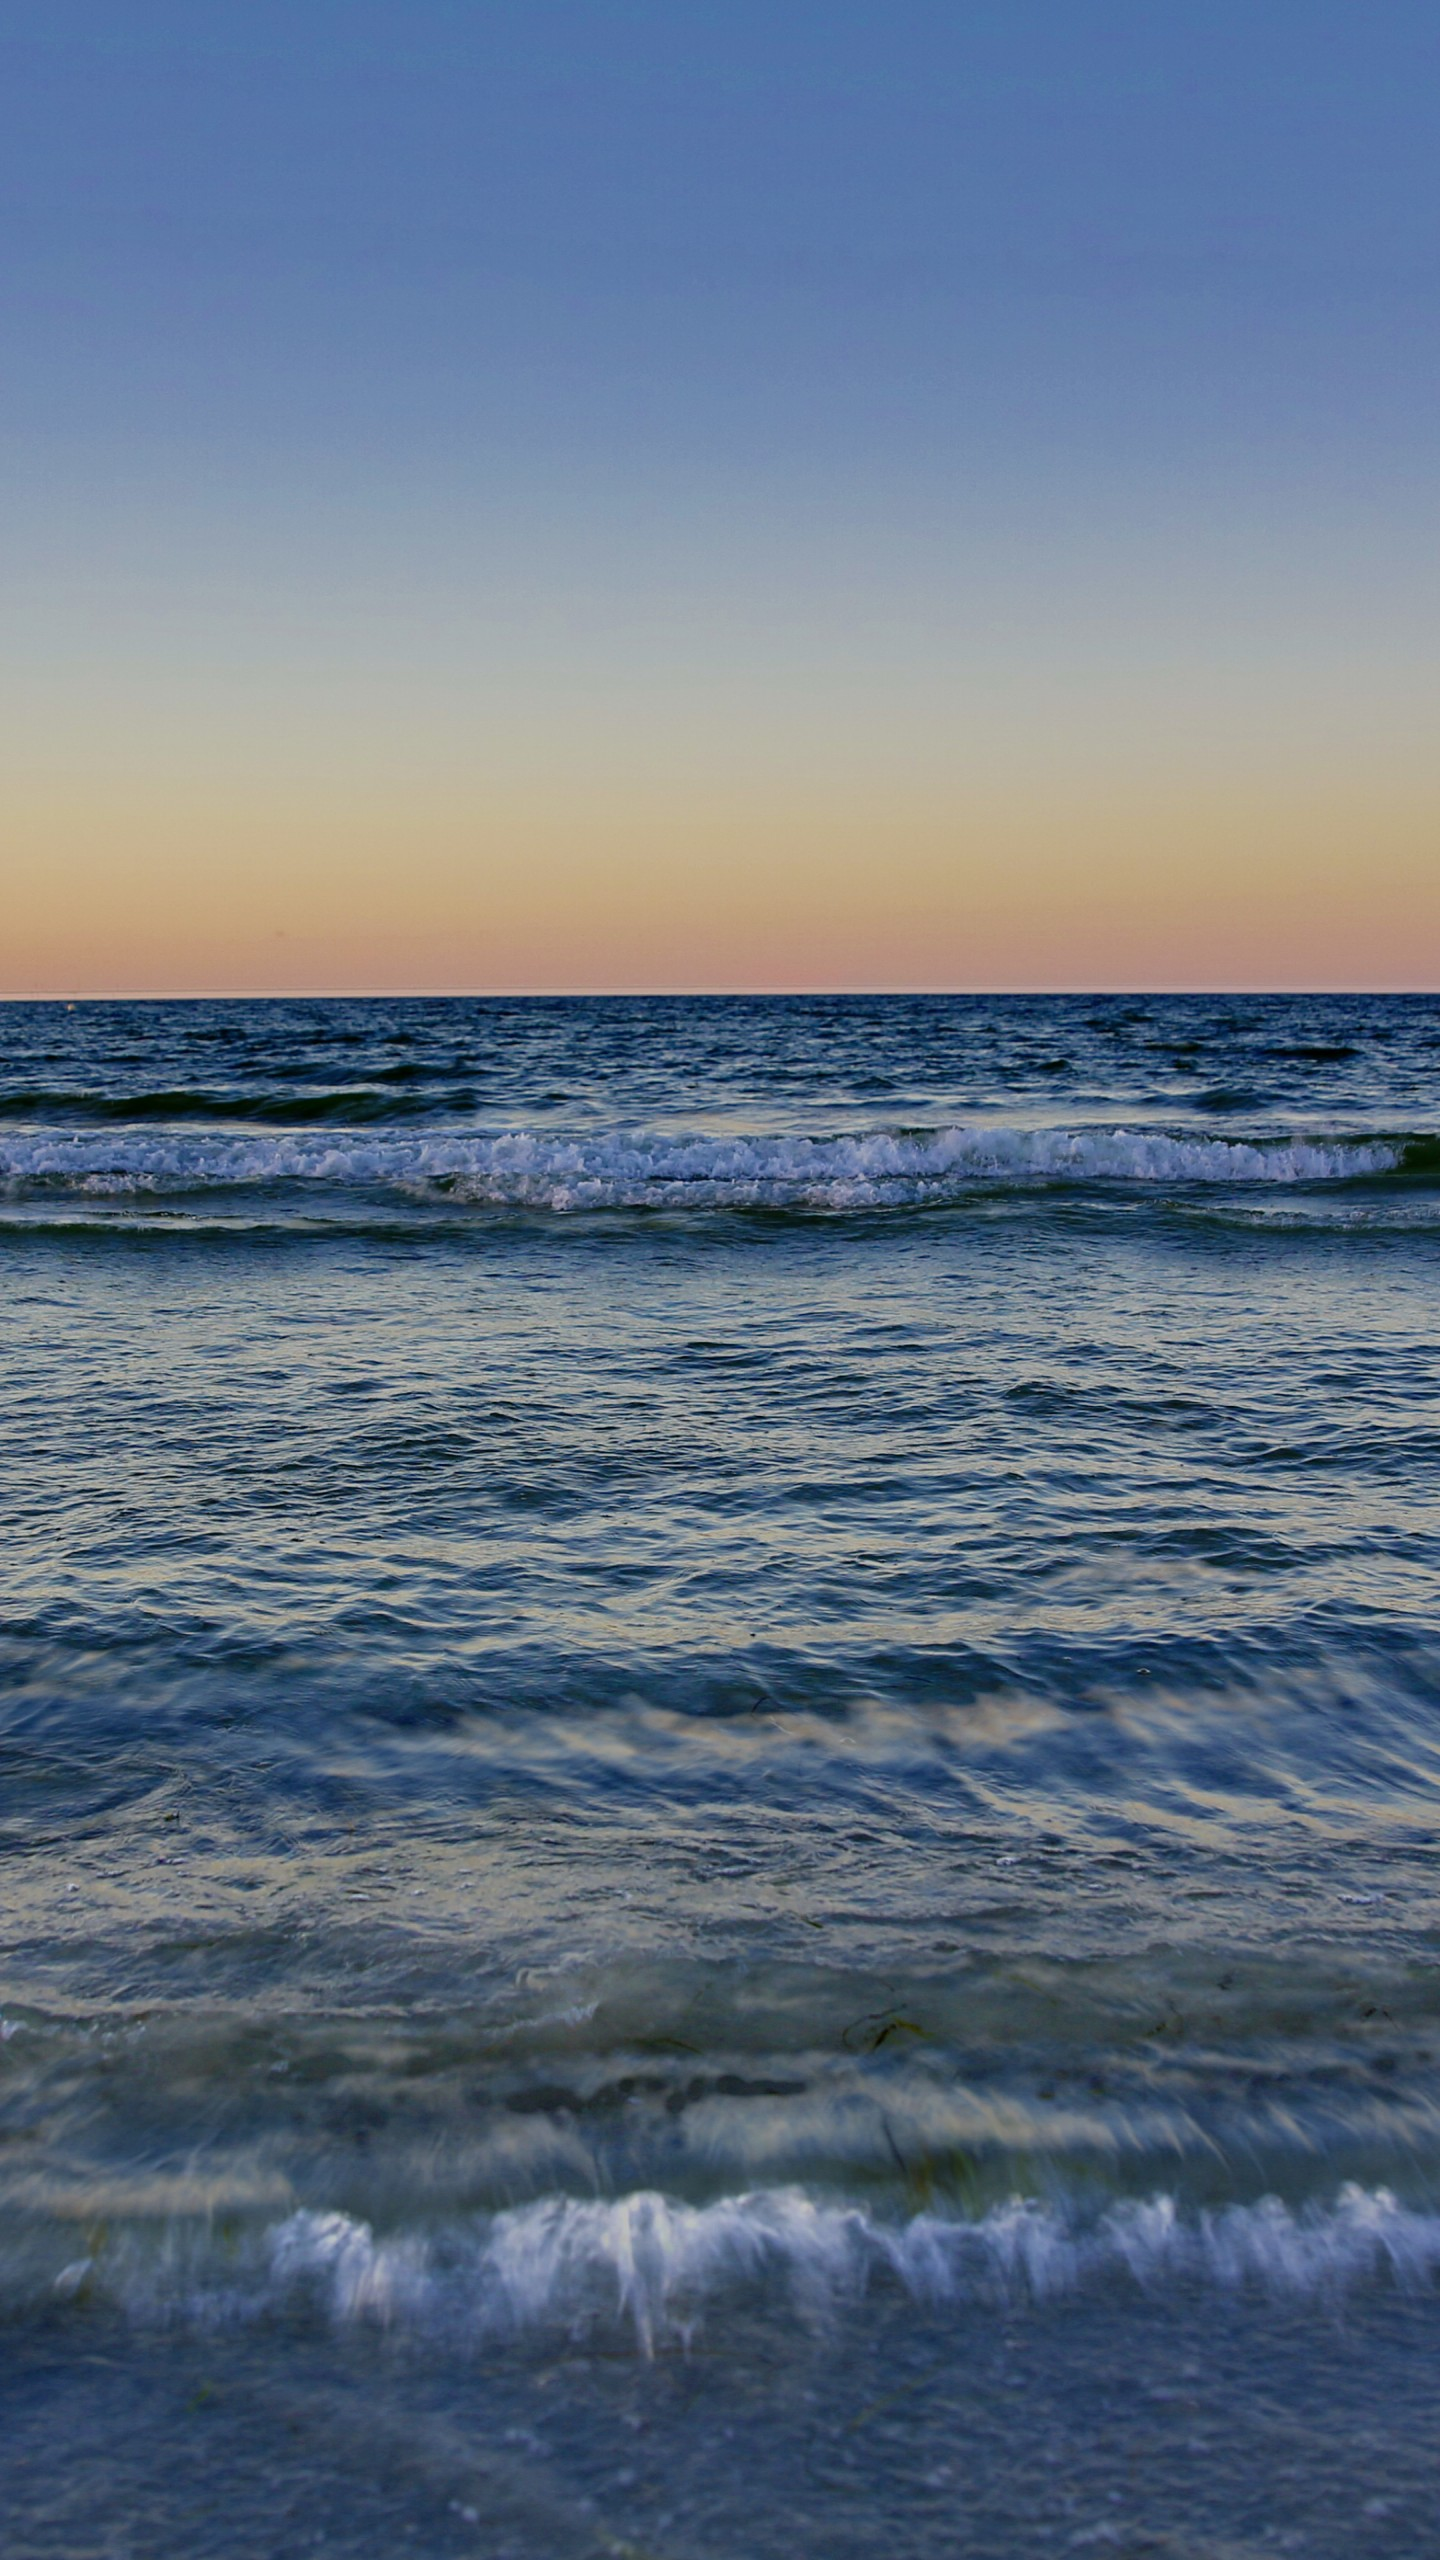 Yellow Wallpapers With Quotes Wallpaper Baltic Sea 4k 5k Wallpaper 8k Ostsee Sunset